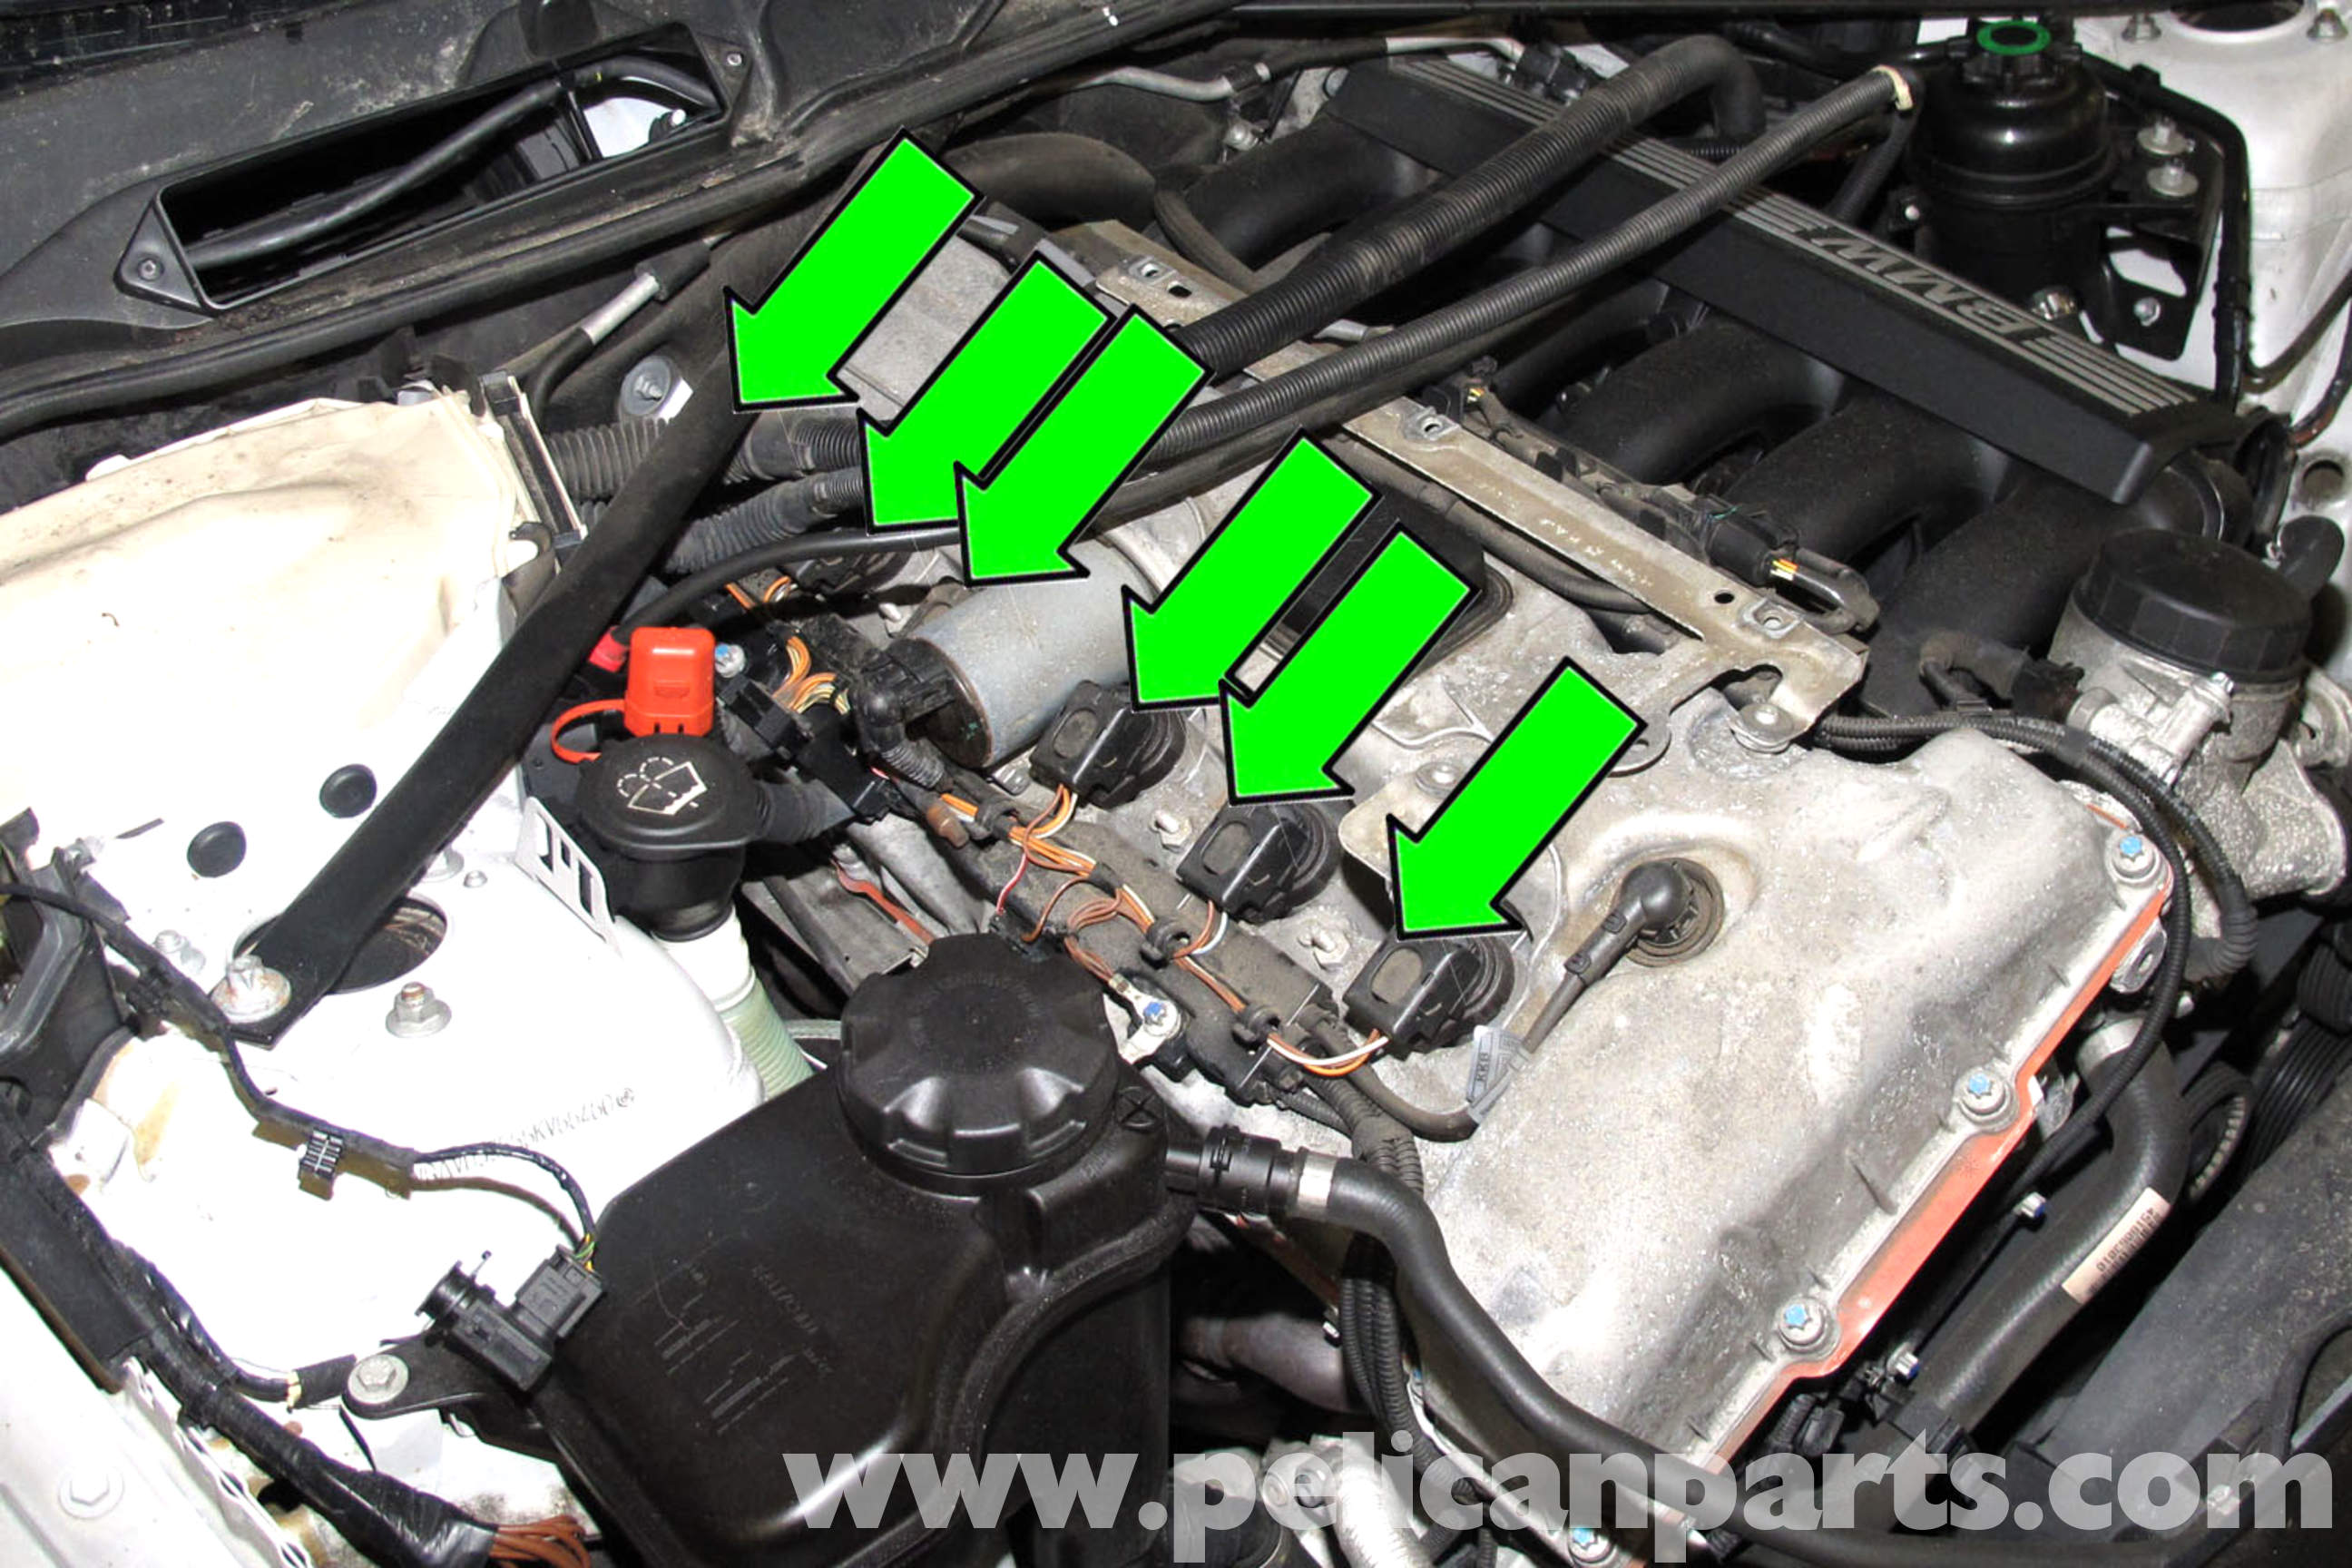 2006 Bmw 325i Battery Diagram Trusted Wiring Diagrams E90 Valvetronic Motor Replacement On Your Honda Insight